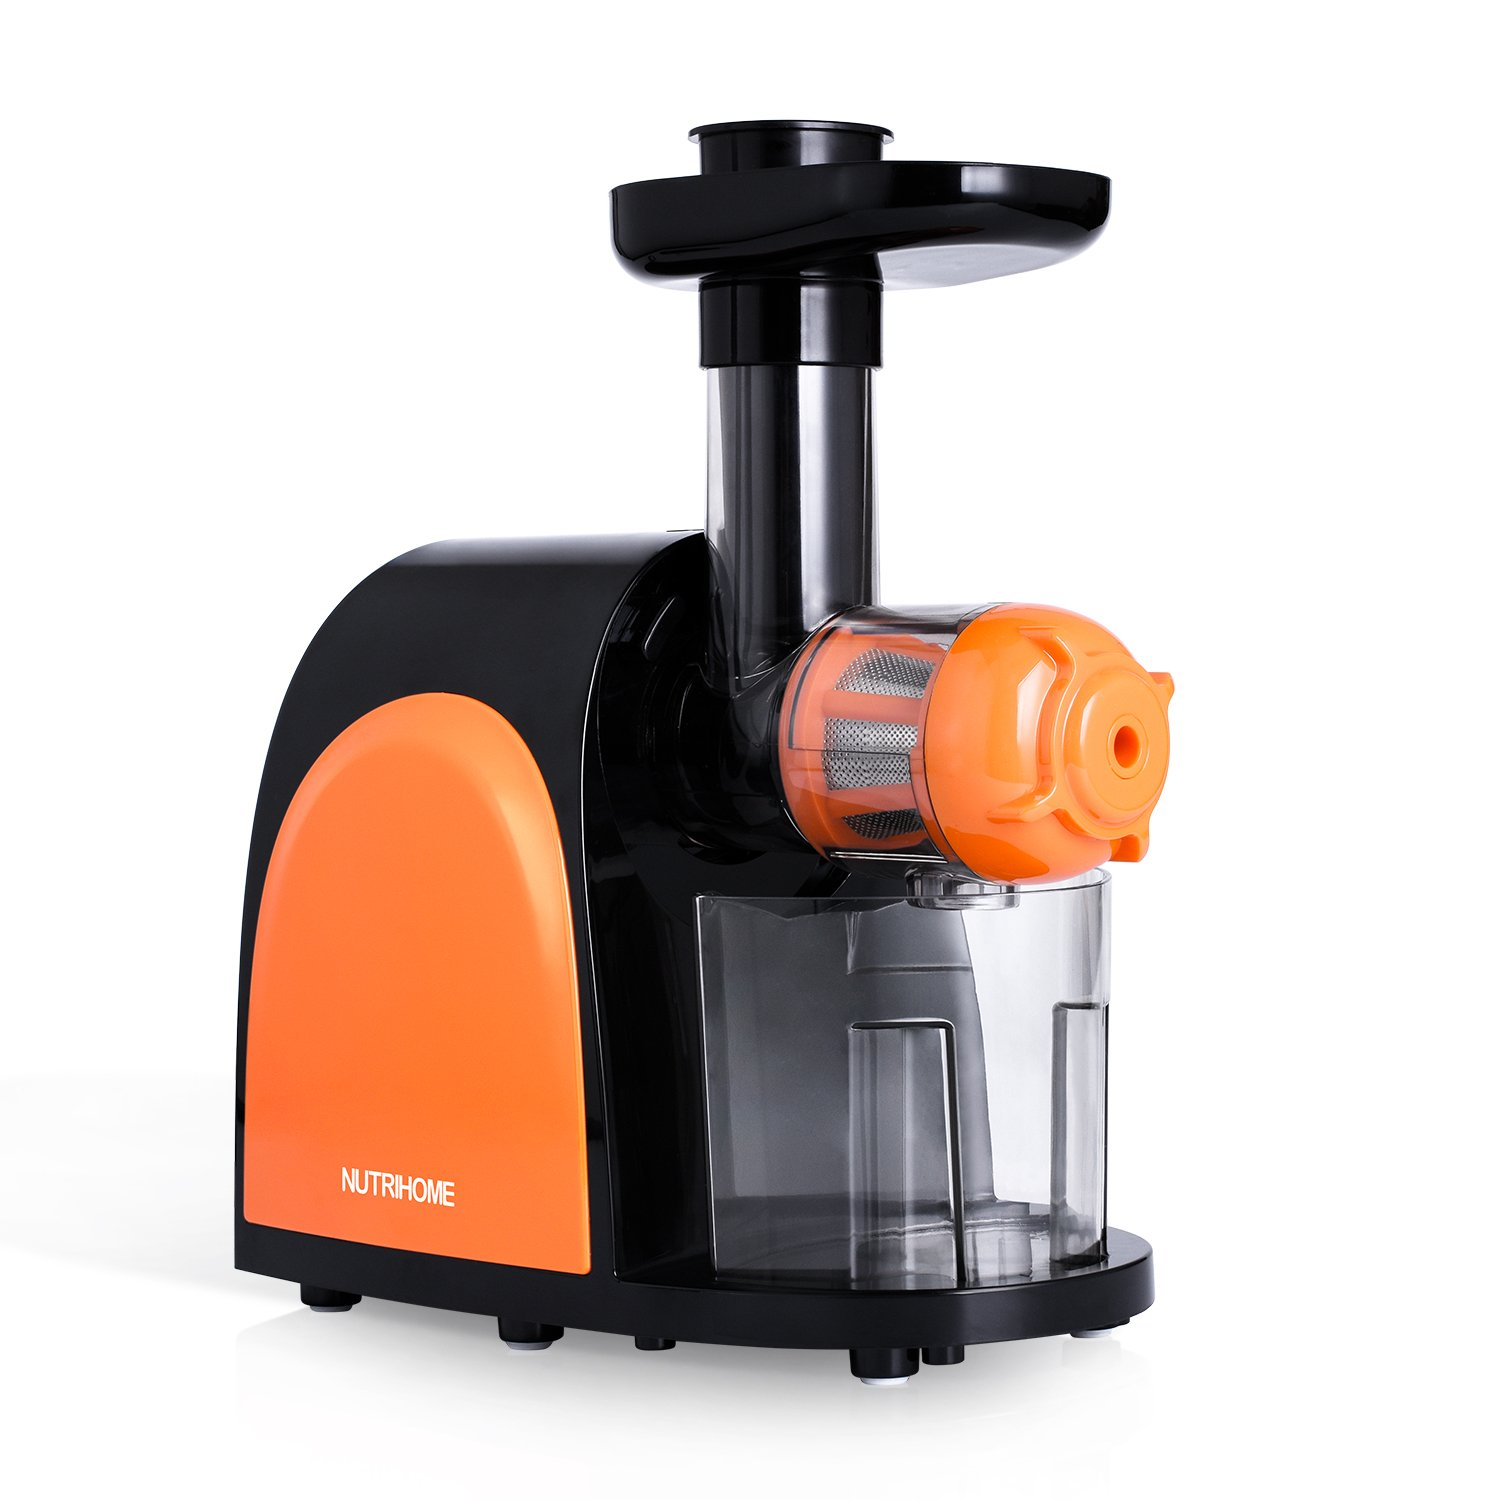 Best Vertical Slow Juicer 2018 : Best Masticating Juicer 2018, Reviews and Buying Guide